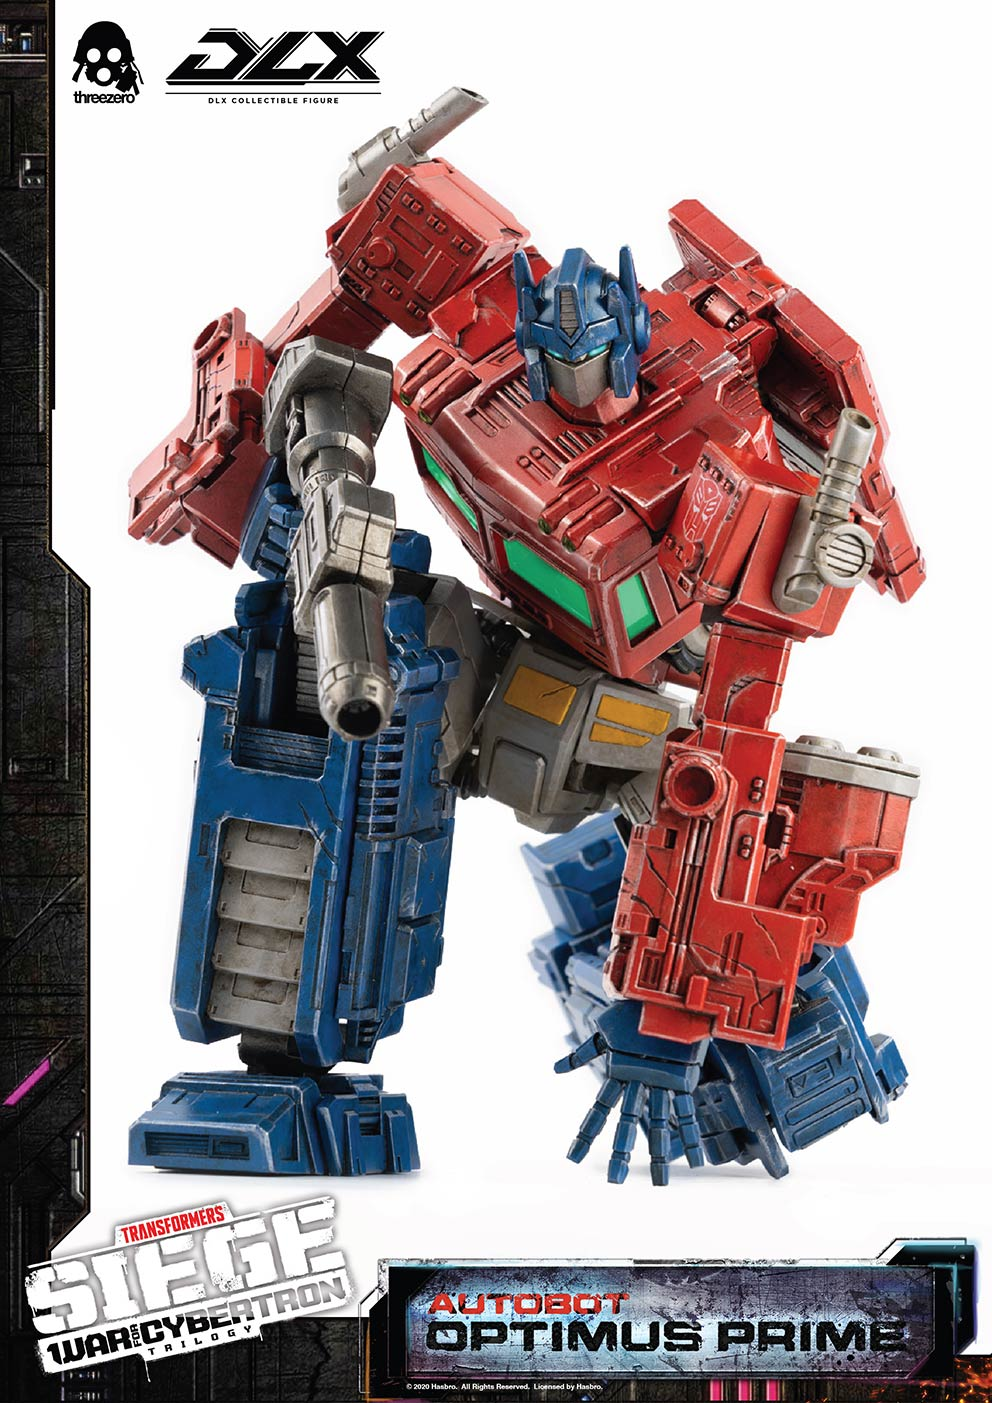 ThreeZero x Hasbro - Transformers: War for Cybertron Trilogy - Optimus Prime (DLX Scale)